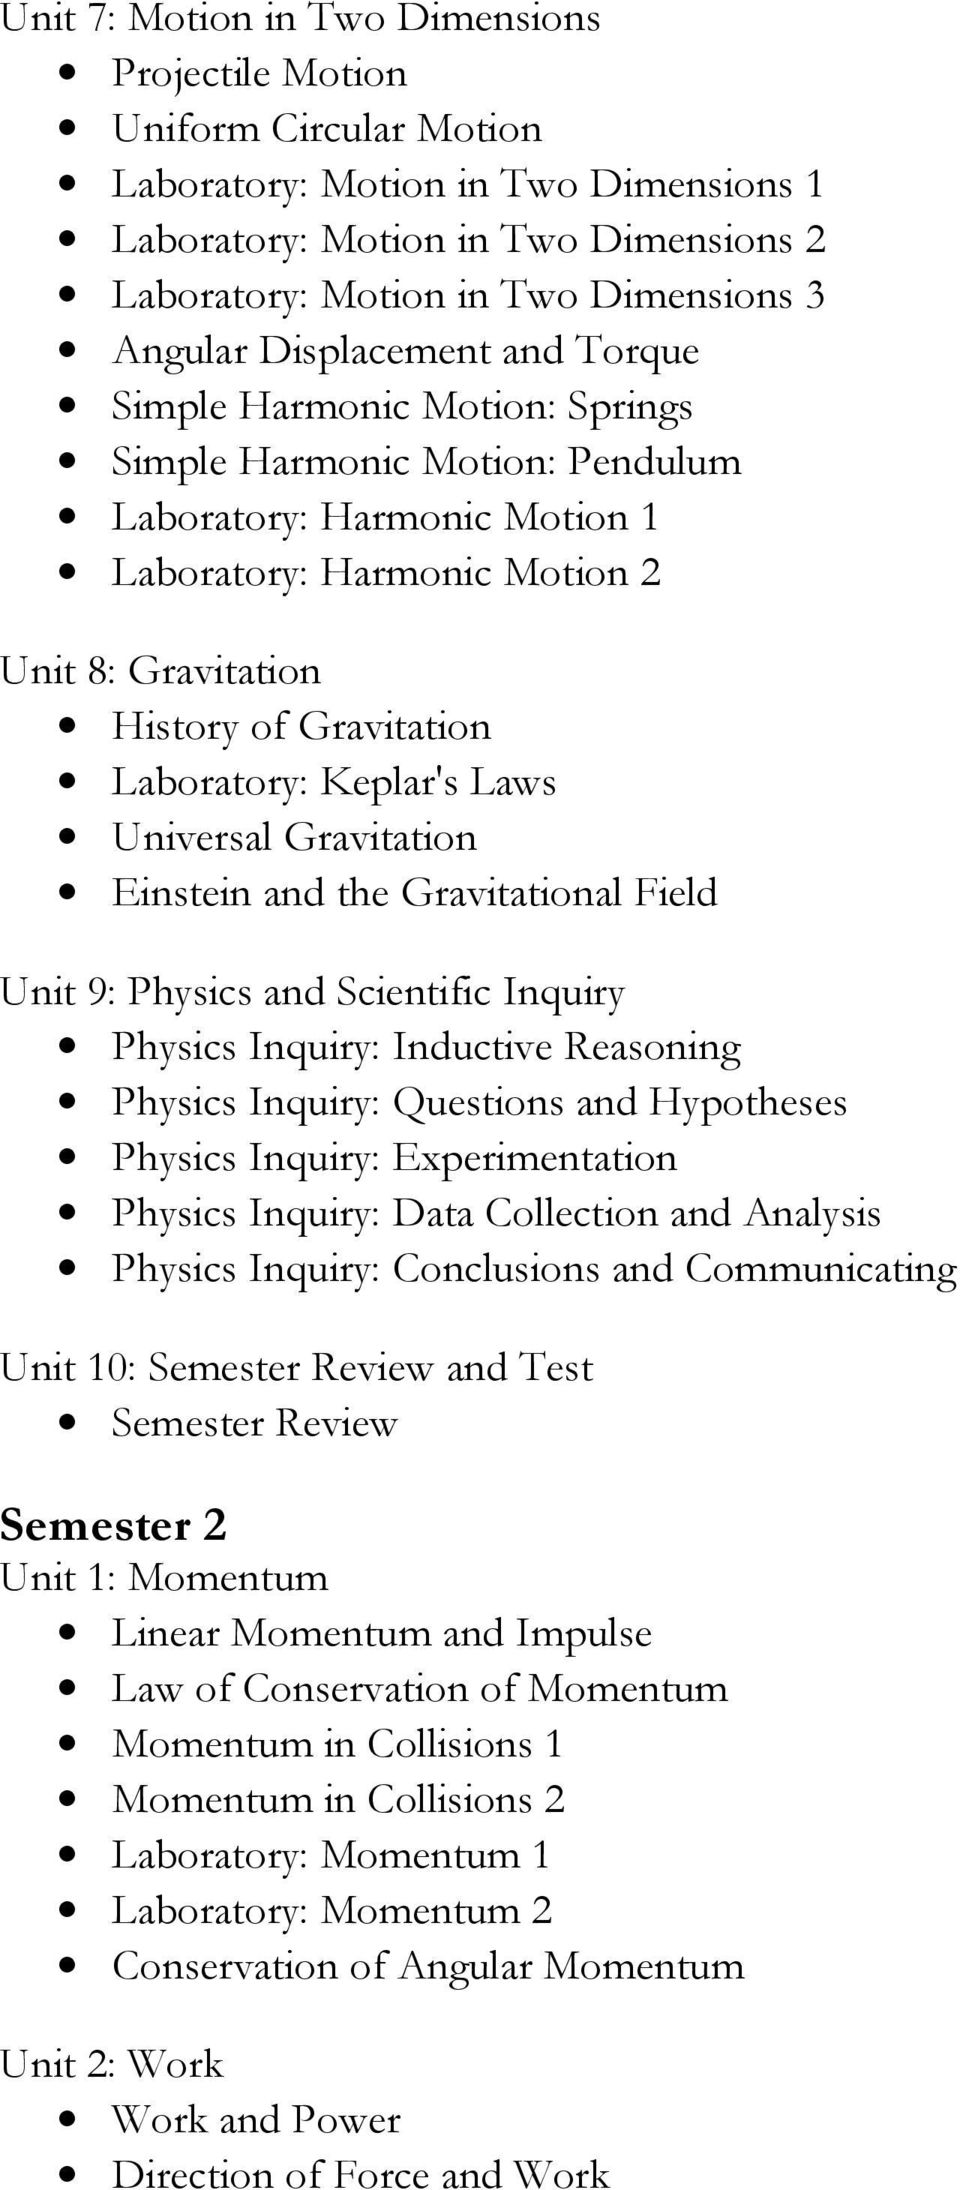 Laboratory: Keplar's Laws Universal Gravitation Einstein and the Gravitational Field Unit 9: Physics and Scientific Inquiry Physics Inquiry: Inductive Reasoning Physics Inquiry: Questions and